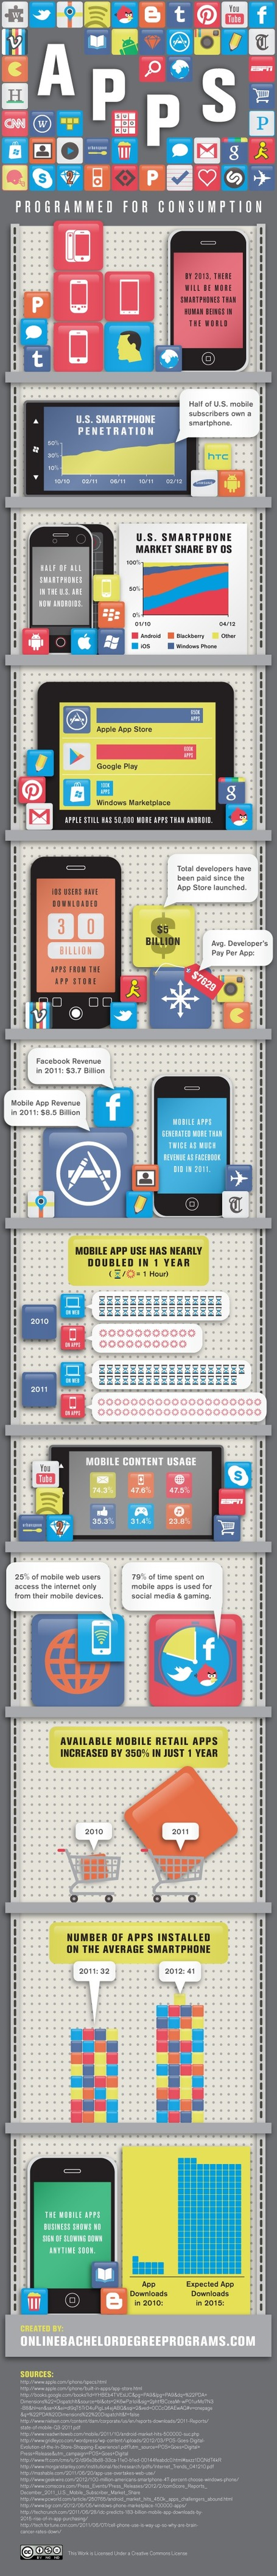 "Mobile Web is Not COMING It's HERE Just In Case You Haven't Noticed [Infographic] | L'impresa ""mobile"" 